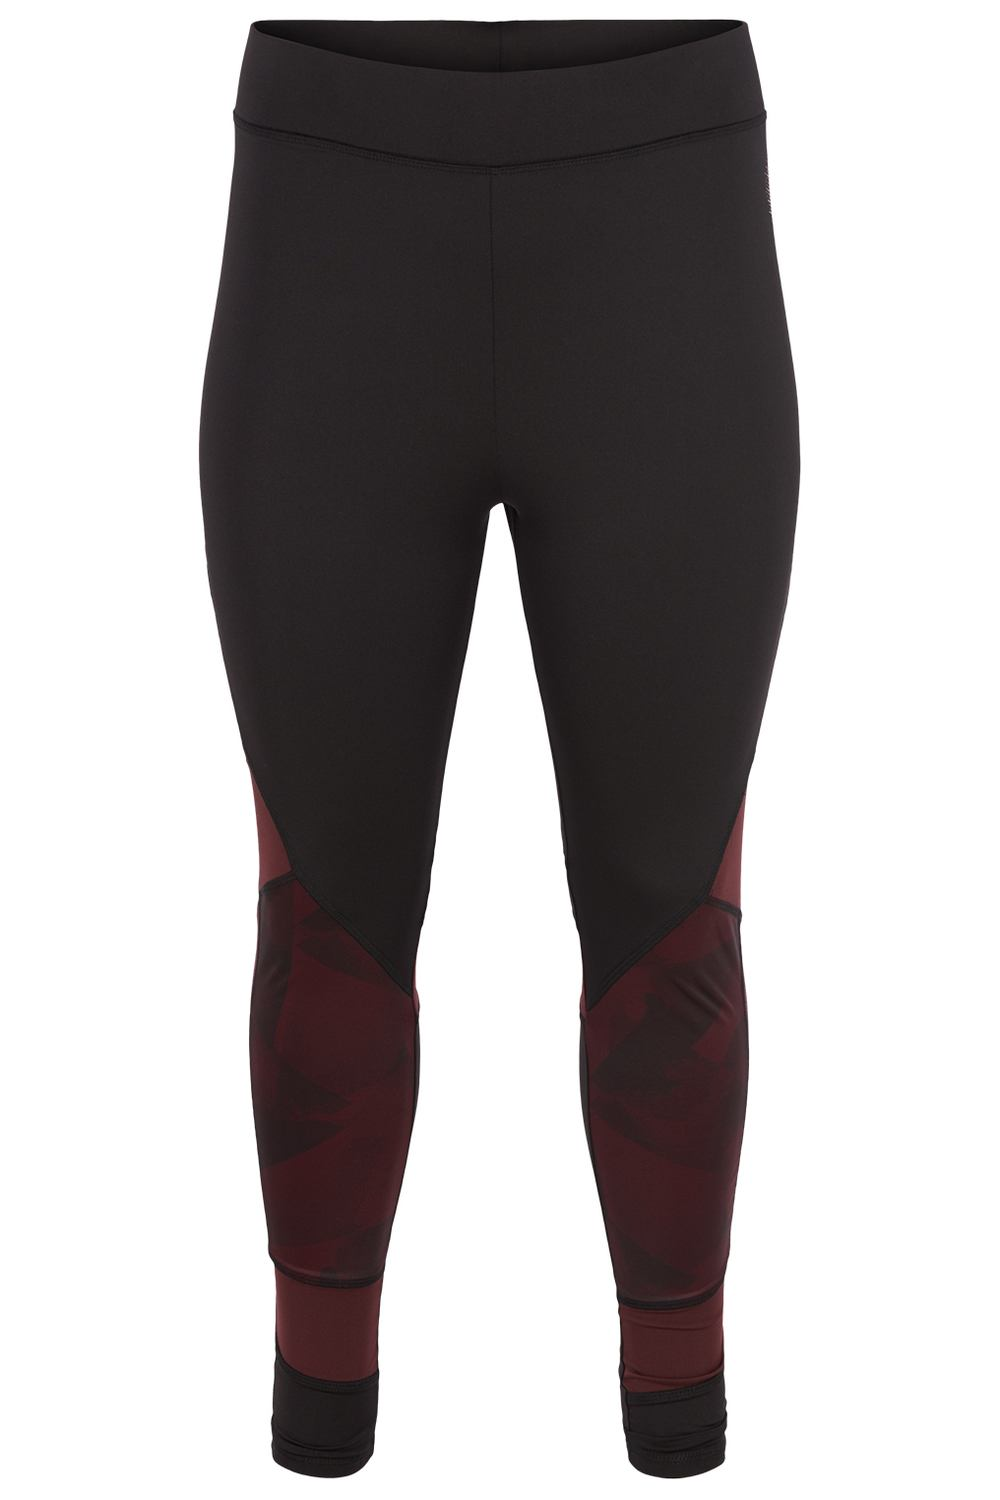 Sportlegging Zizzi Active MOVE